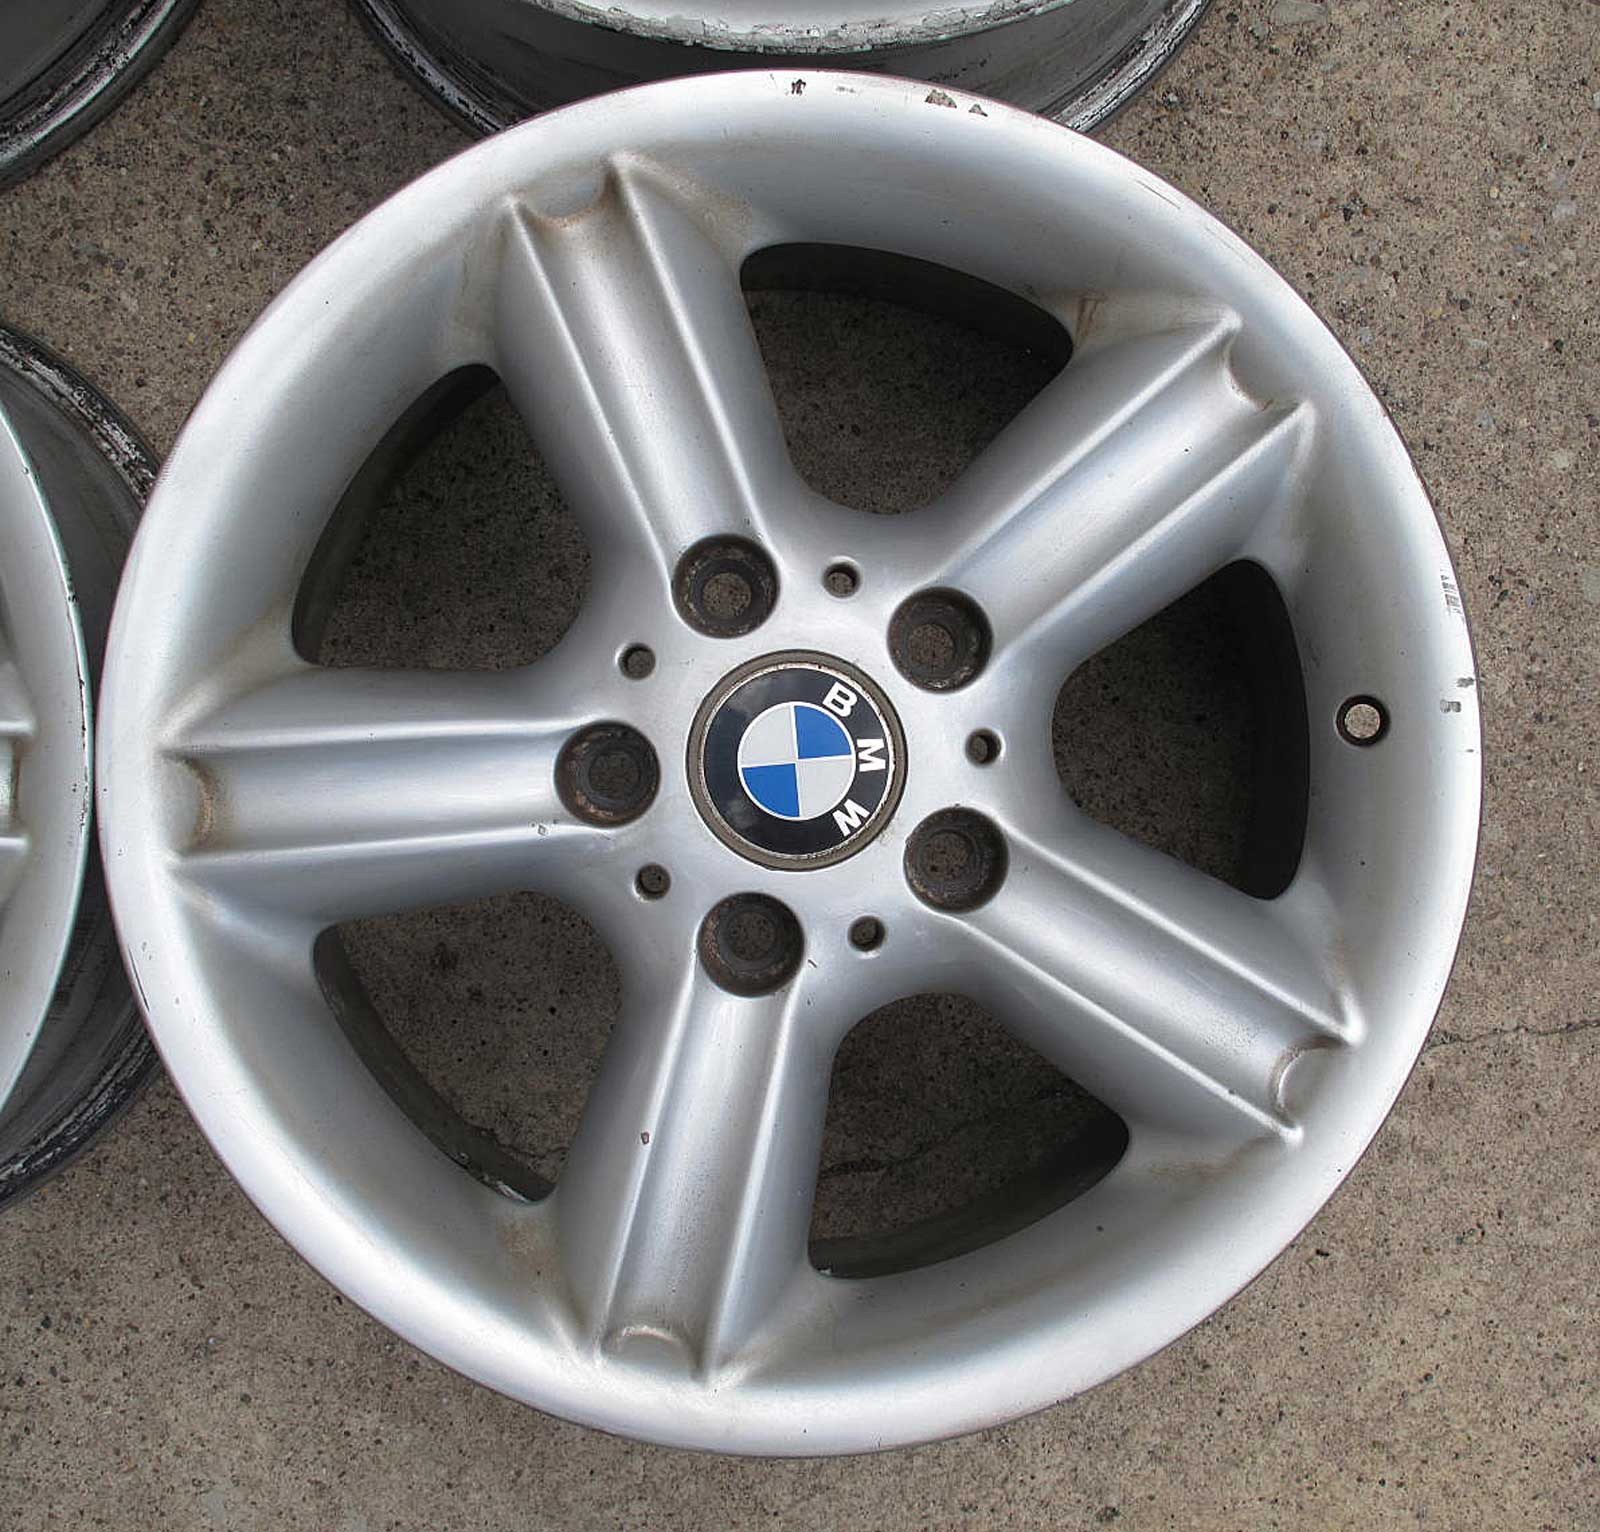 "Bmw Z 3 For Sale: BMW E36 E46 Z3 16"" 16x7 Style 55 Star 5 Spoke OEM Alloy"